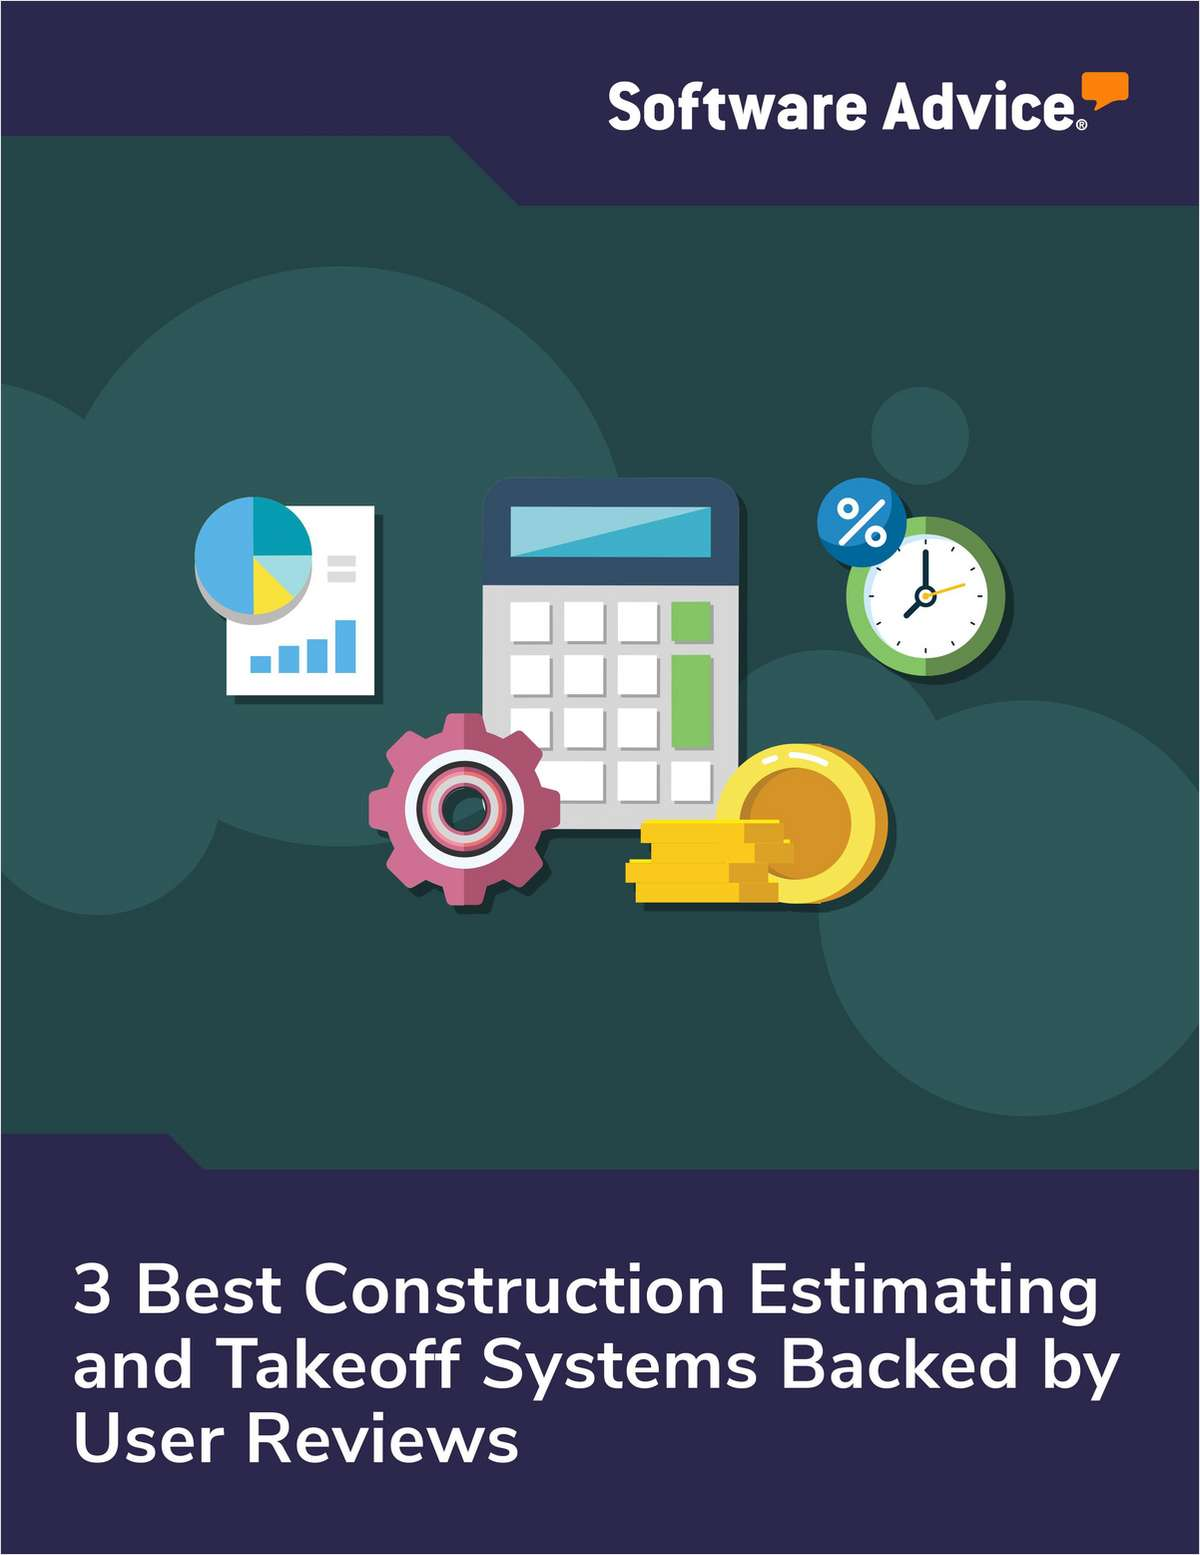 3 Best Construction Estimating and Takeoff Systems Backed by User Reviews